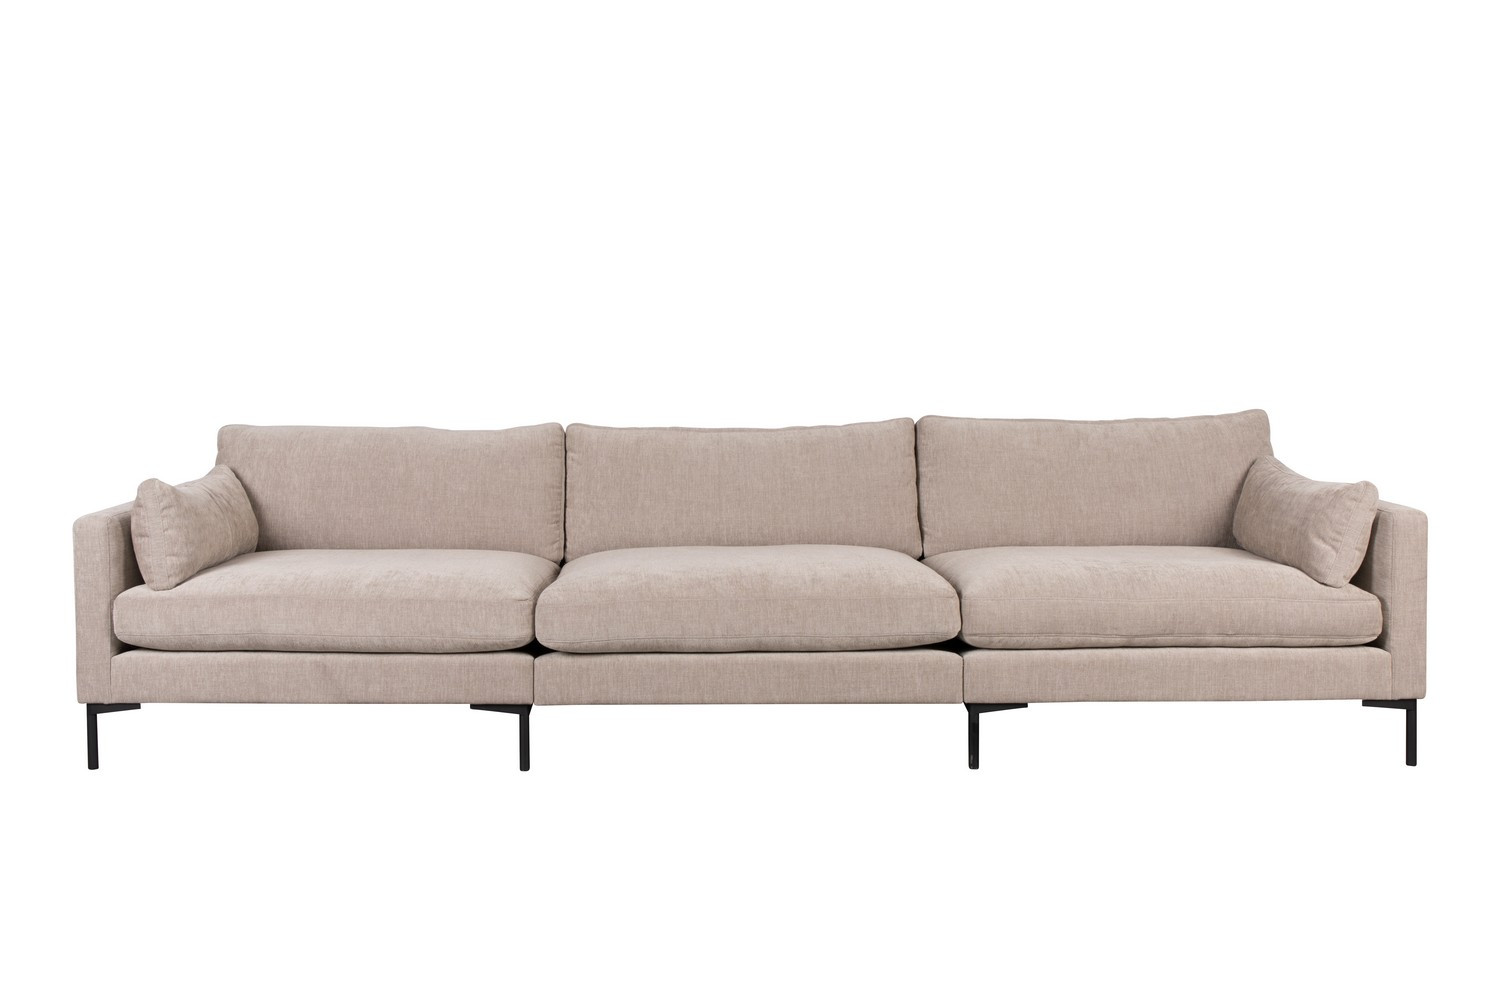 Zuiver Tv Meubel.Summer Sofa By Zuiver